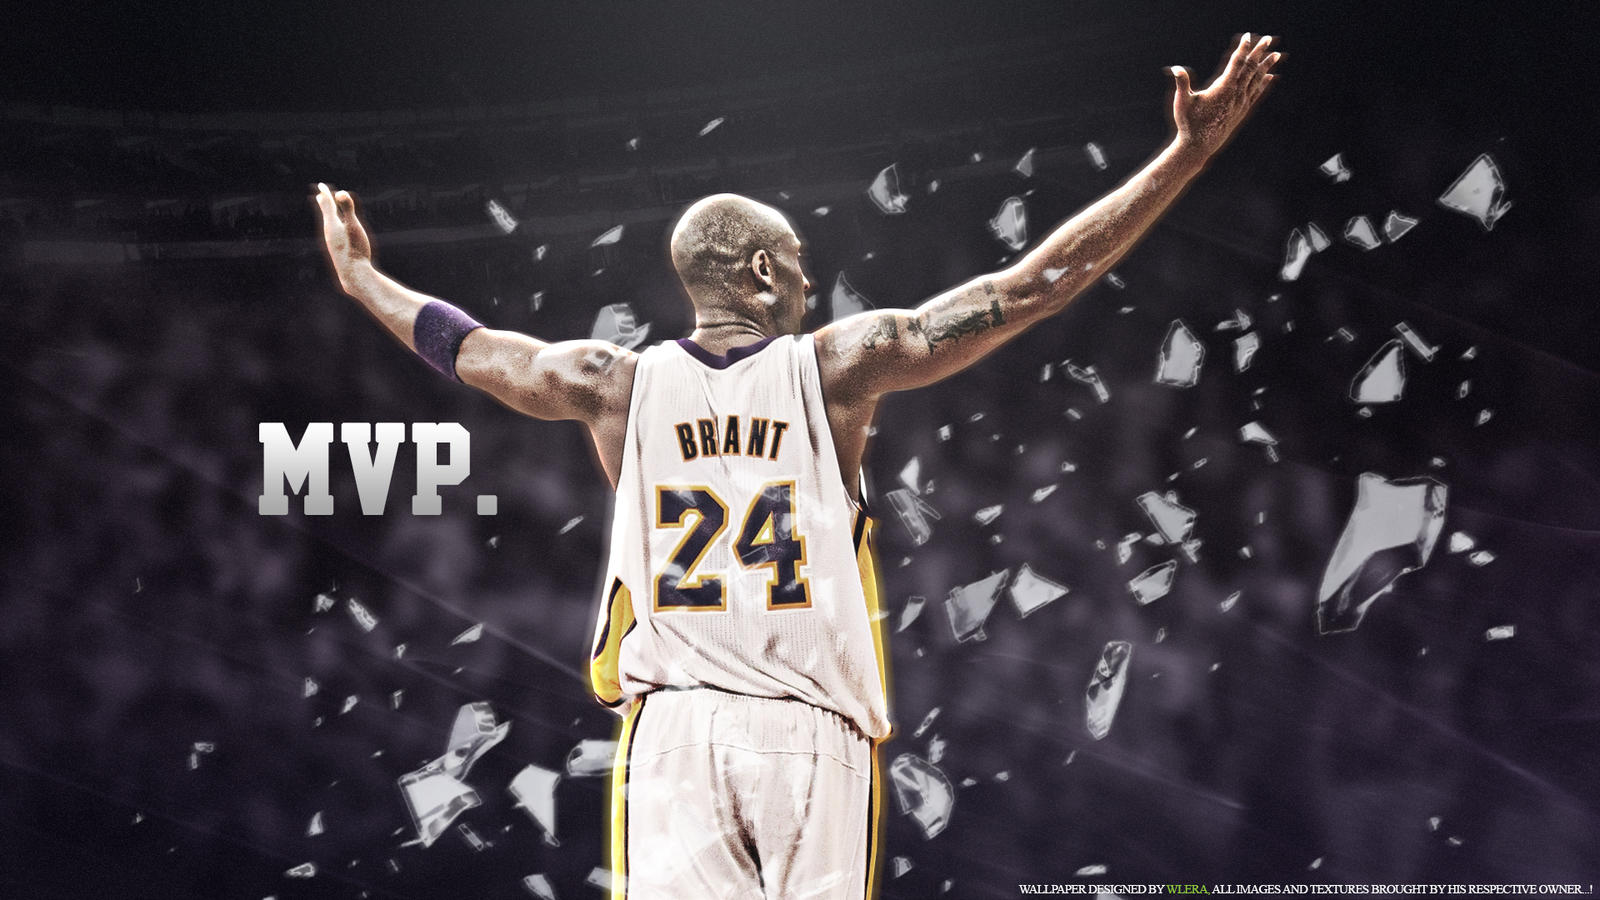 kobe bryant mvp by wlera on deviantart